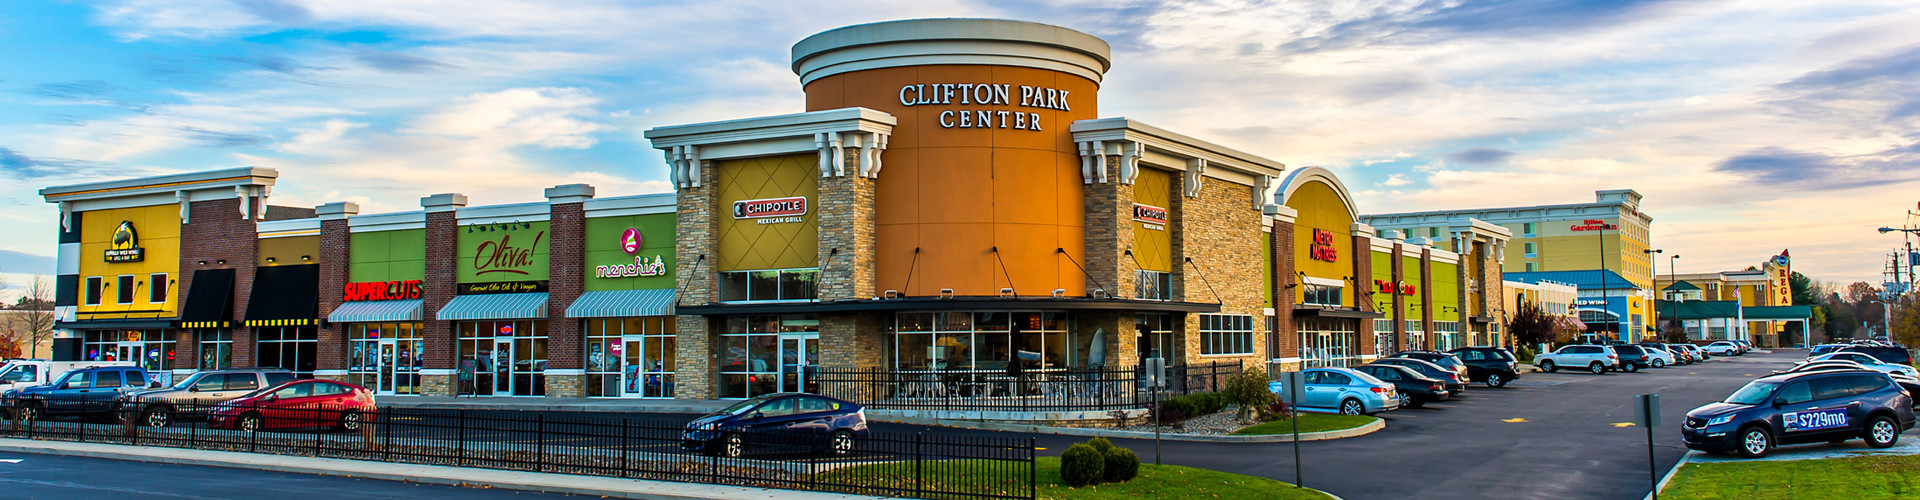 Home | Office Space & Commercial Real Estate | Clifton Park